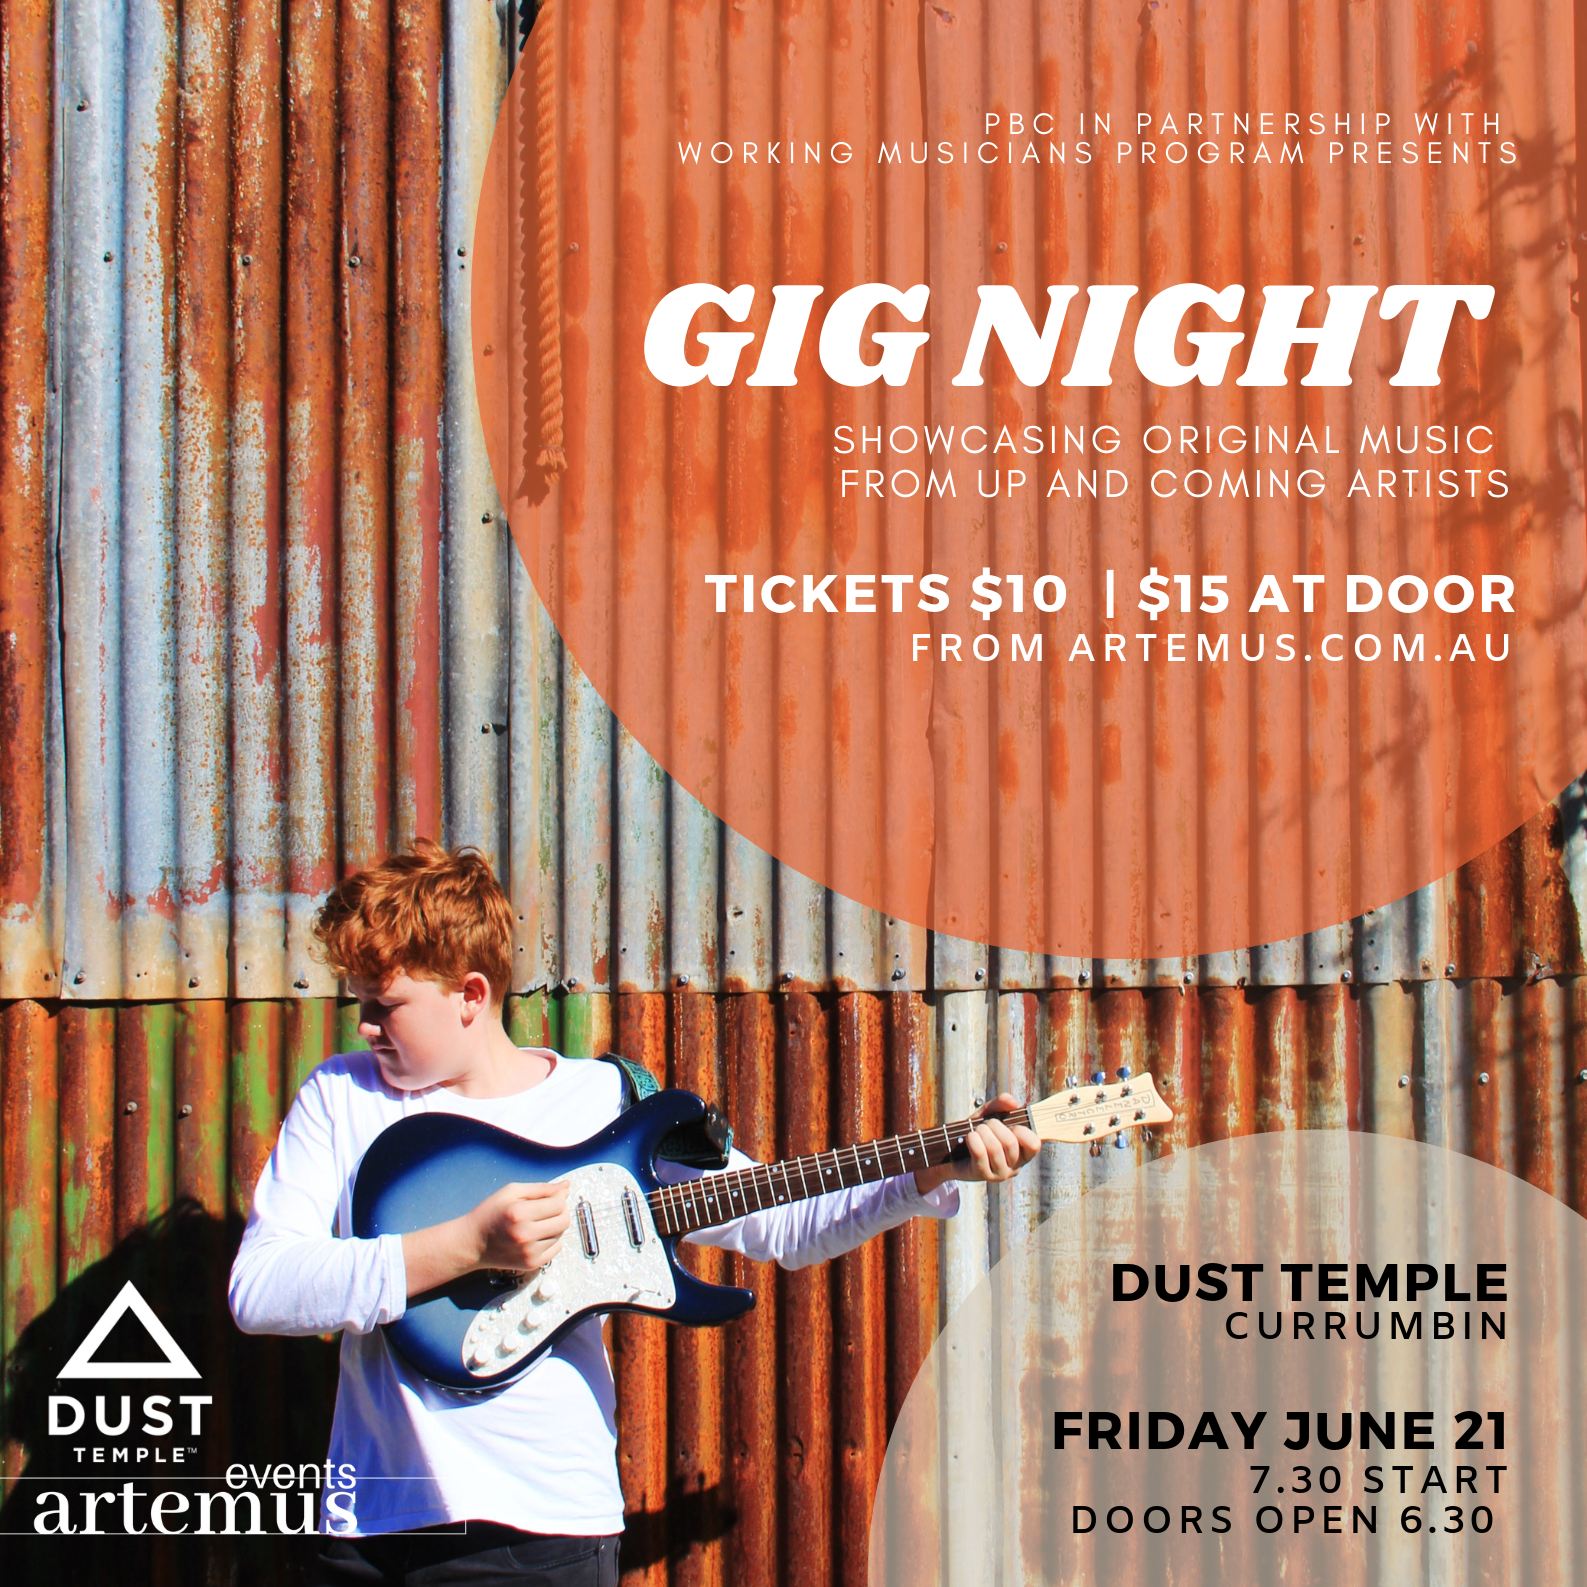 GIG NIGHT | presented by the WMP - Working Musicians Program - In partnership with pbcFRIDAY JUNE 21, 2019#liveatdustLEArn more